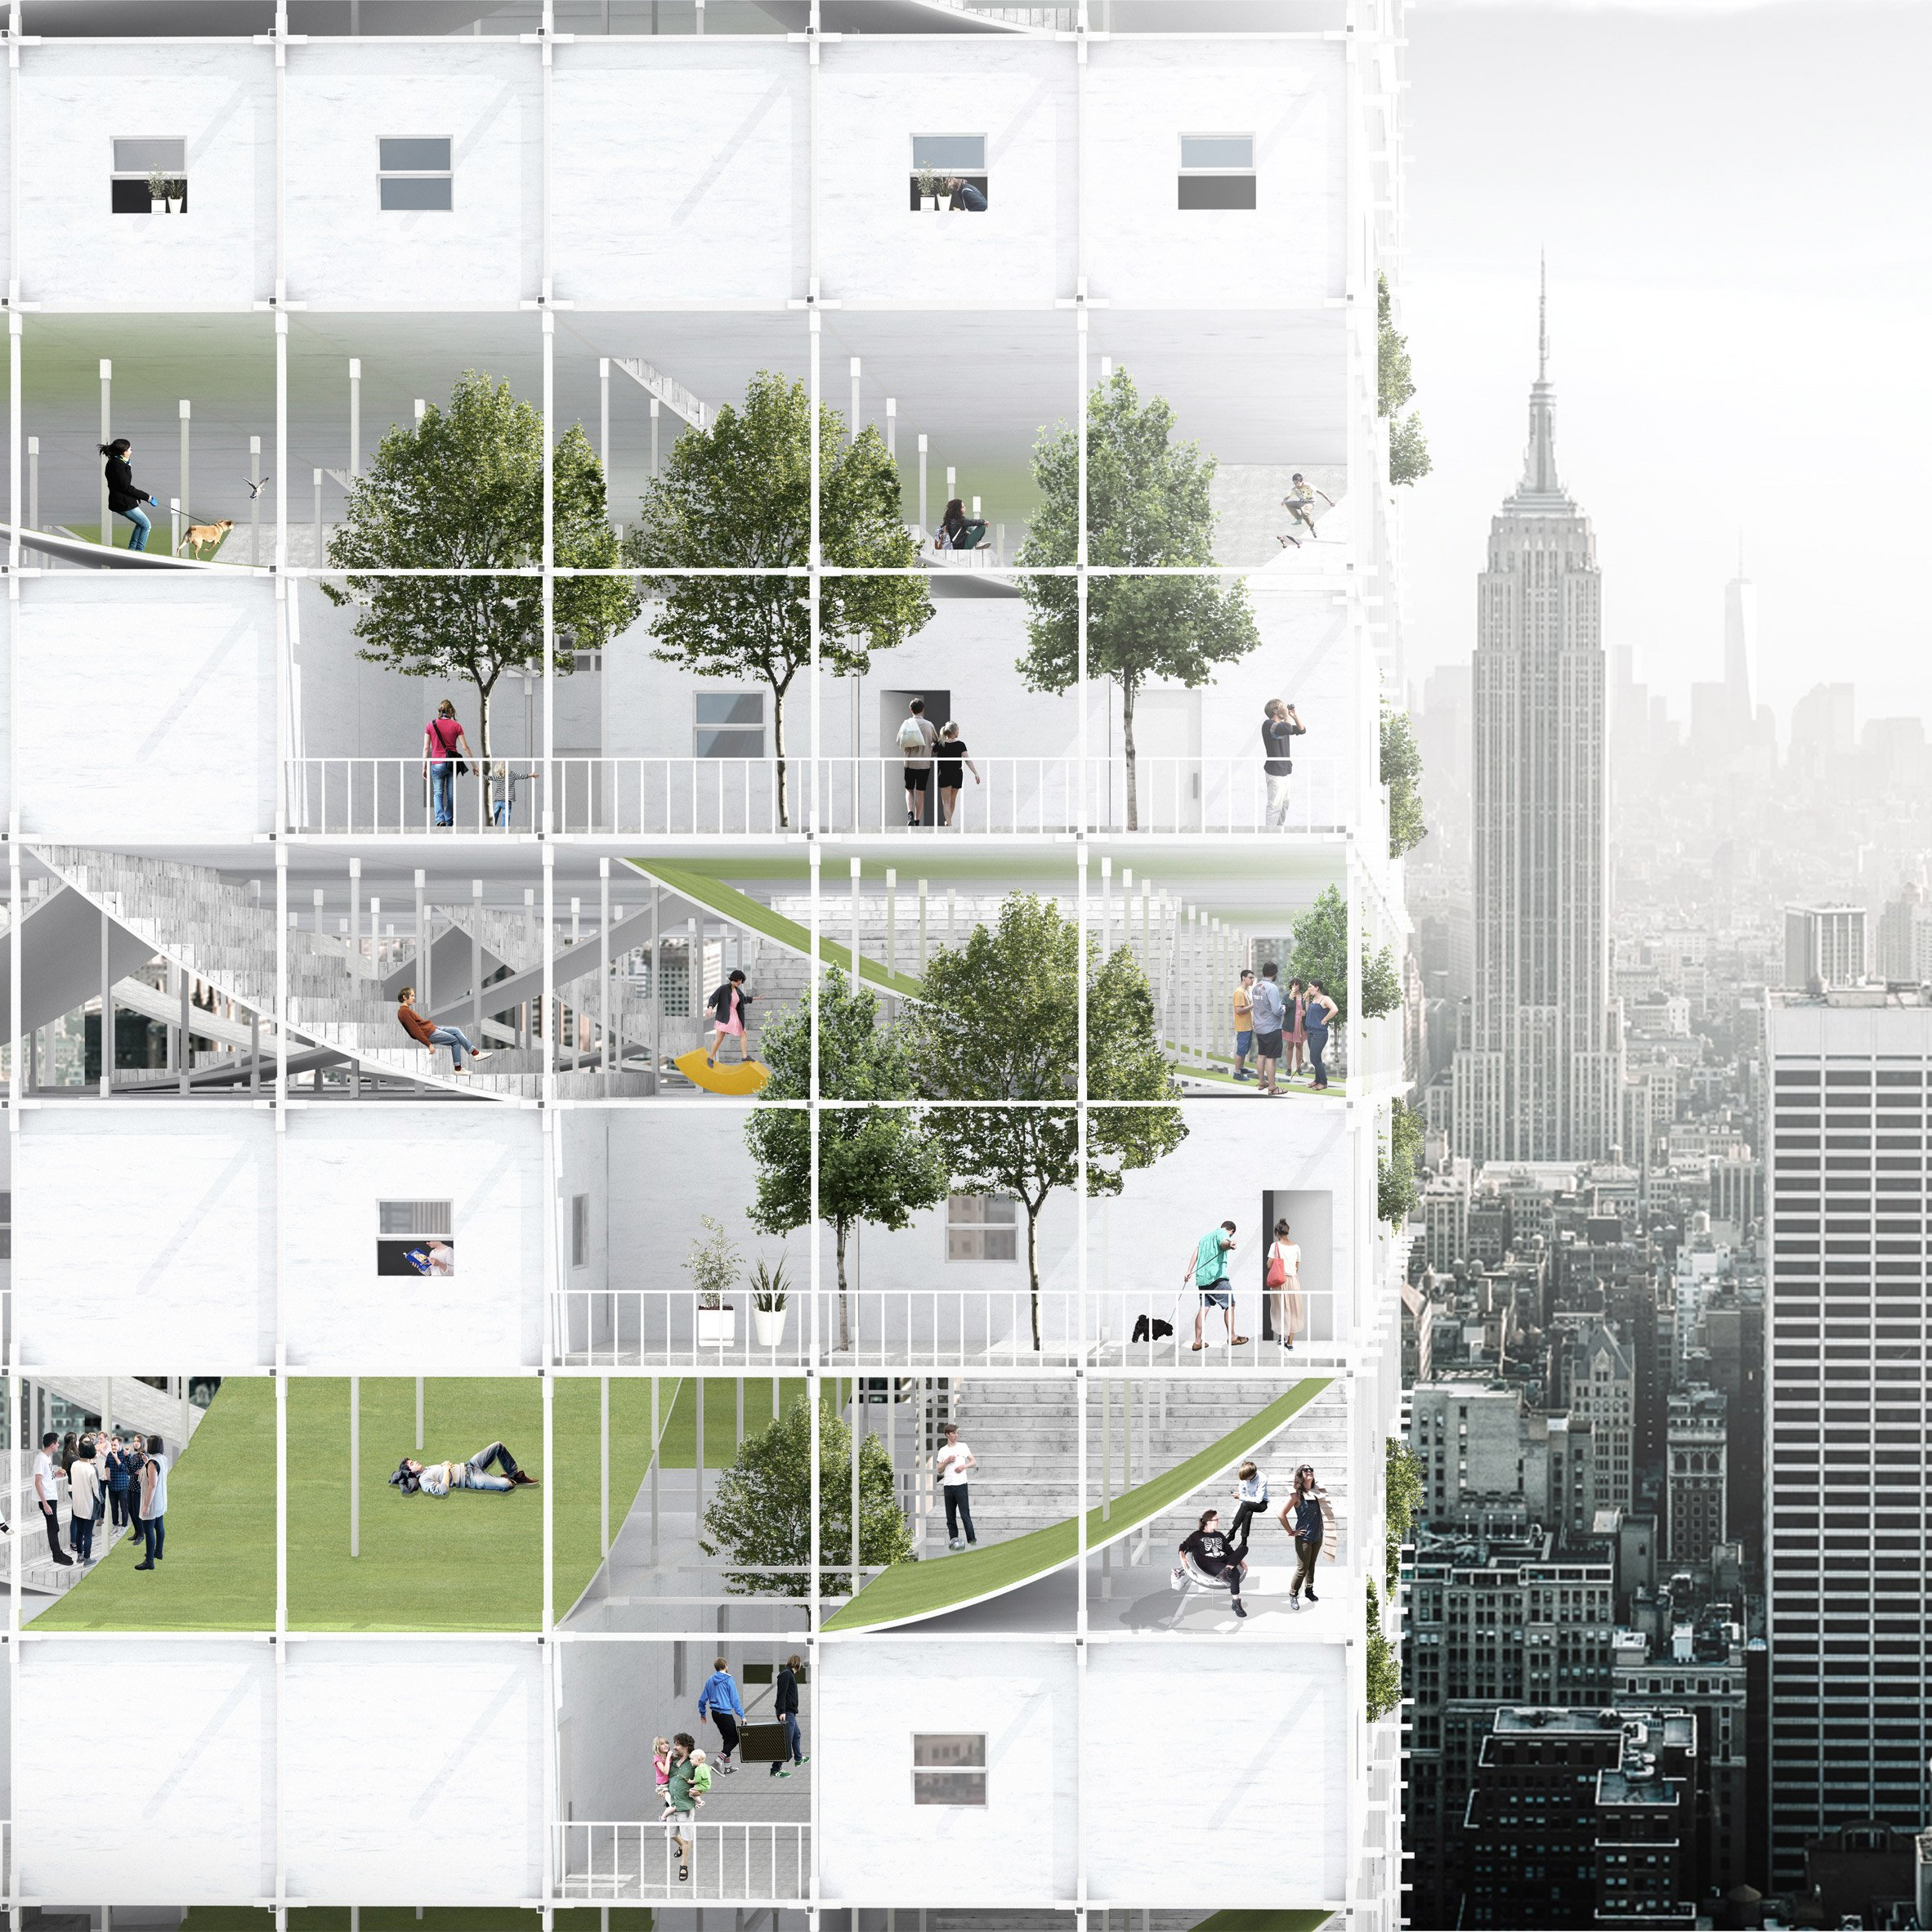 Modular Affordable Housing Envisioned For Abandoned New York Airspace